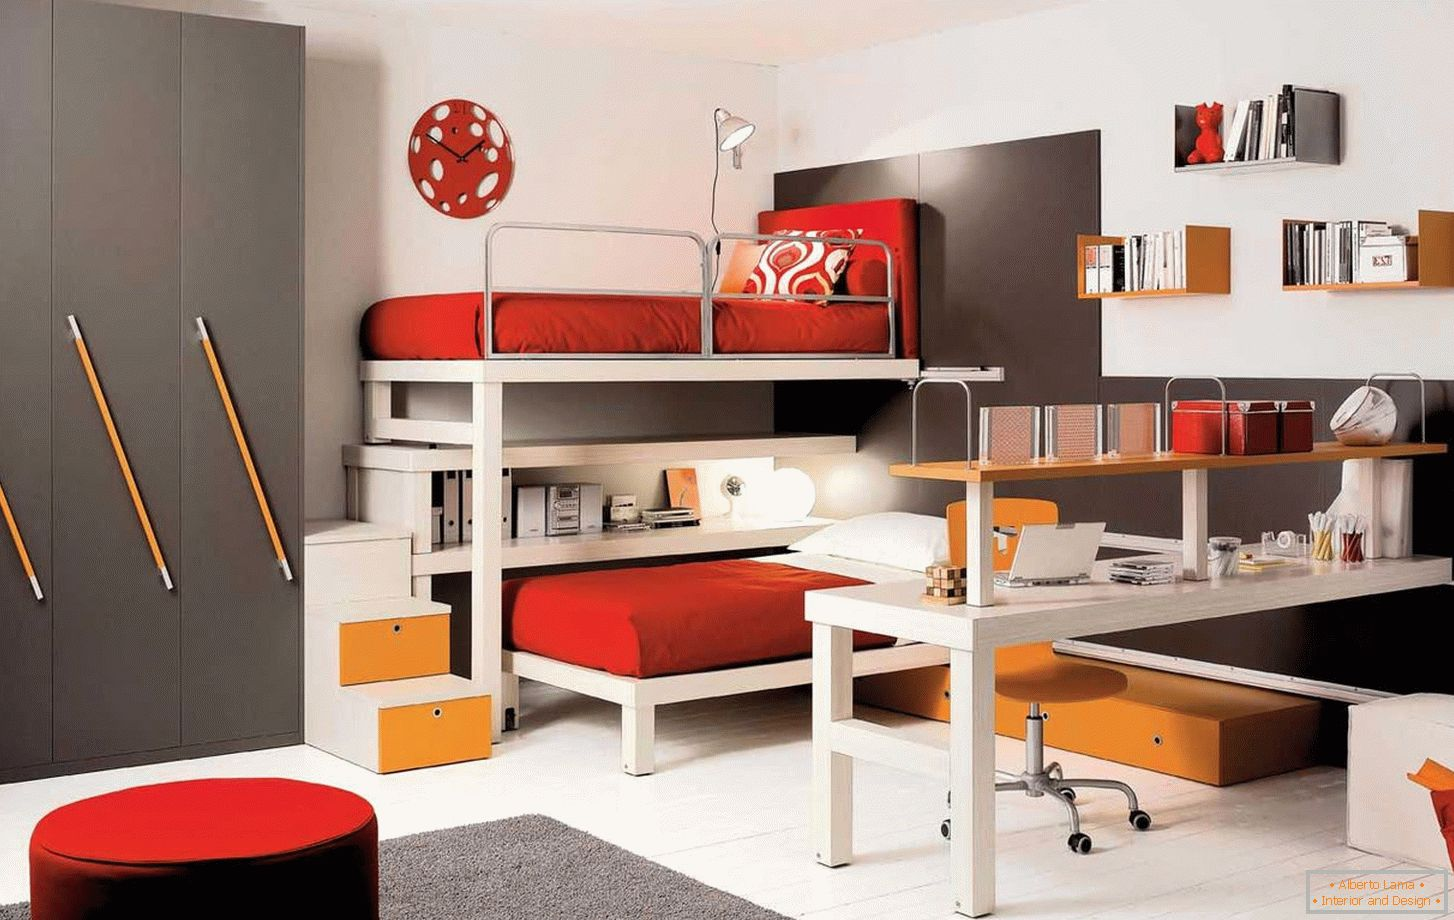 Red and white children's room decor